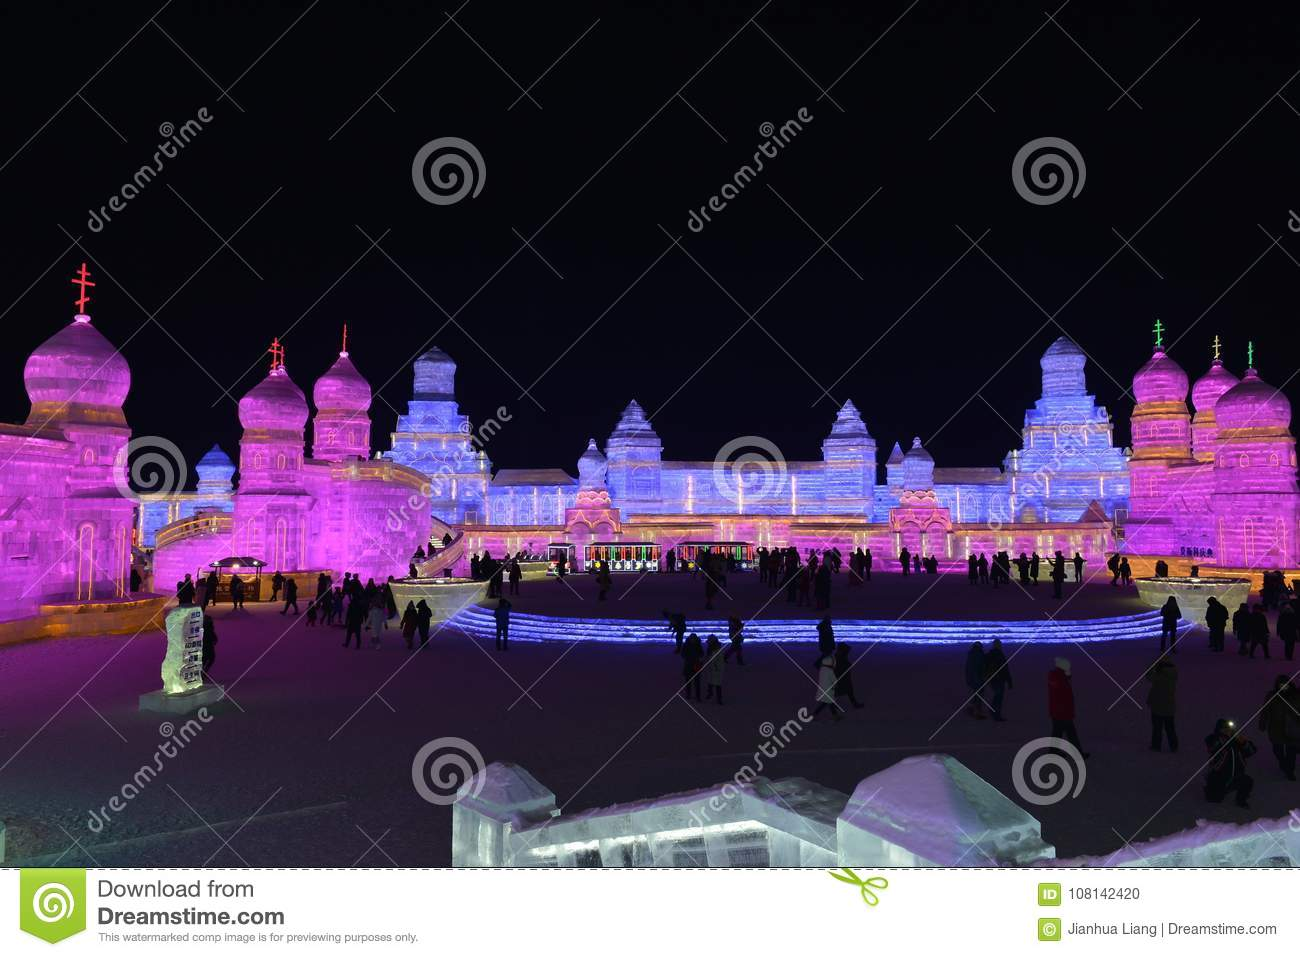 Harbin International Ice and Snow Sculpture Festival 2018